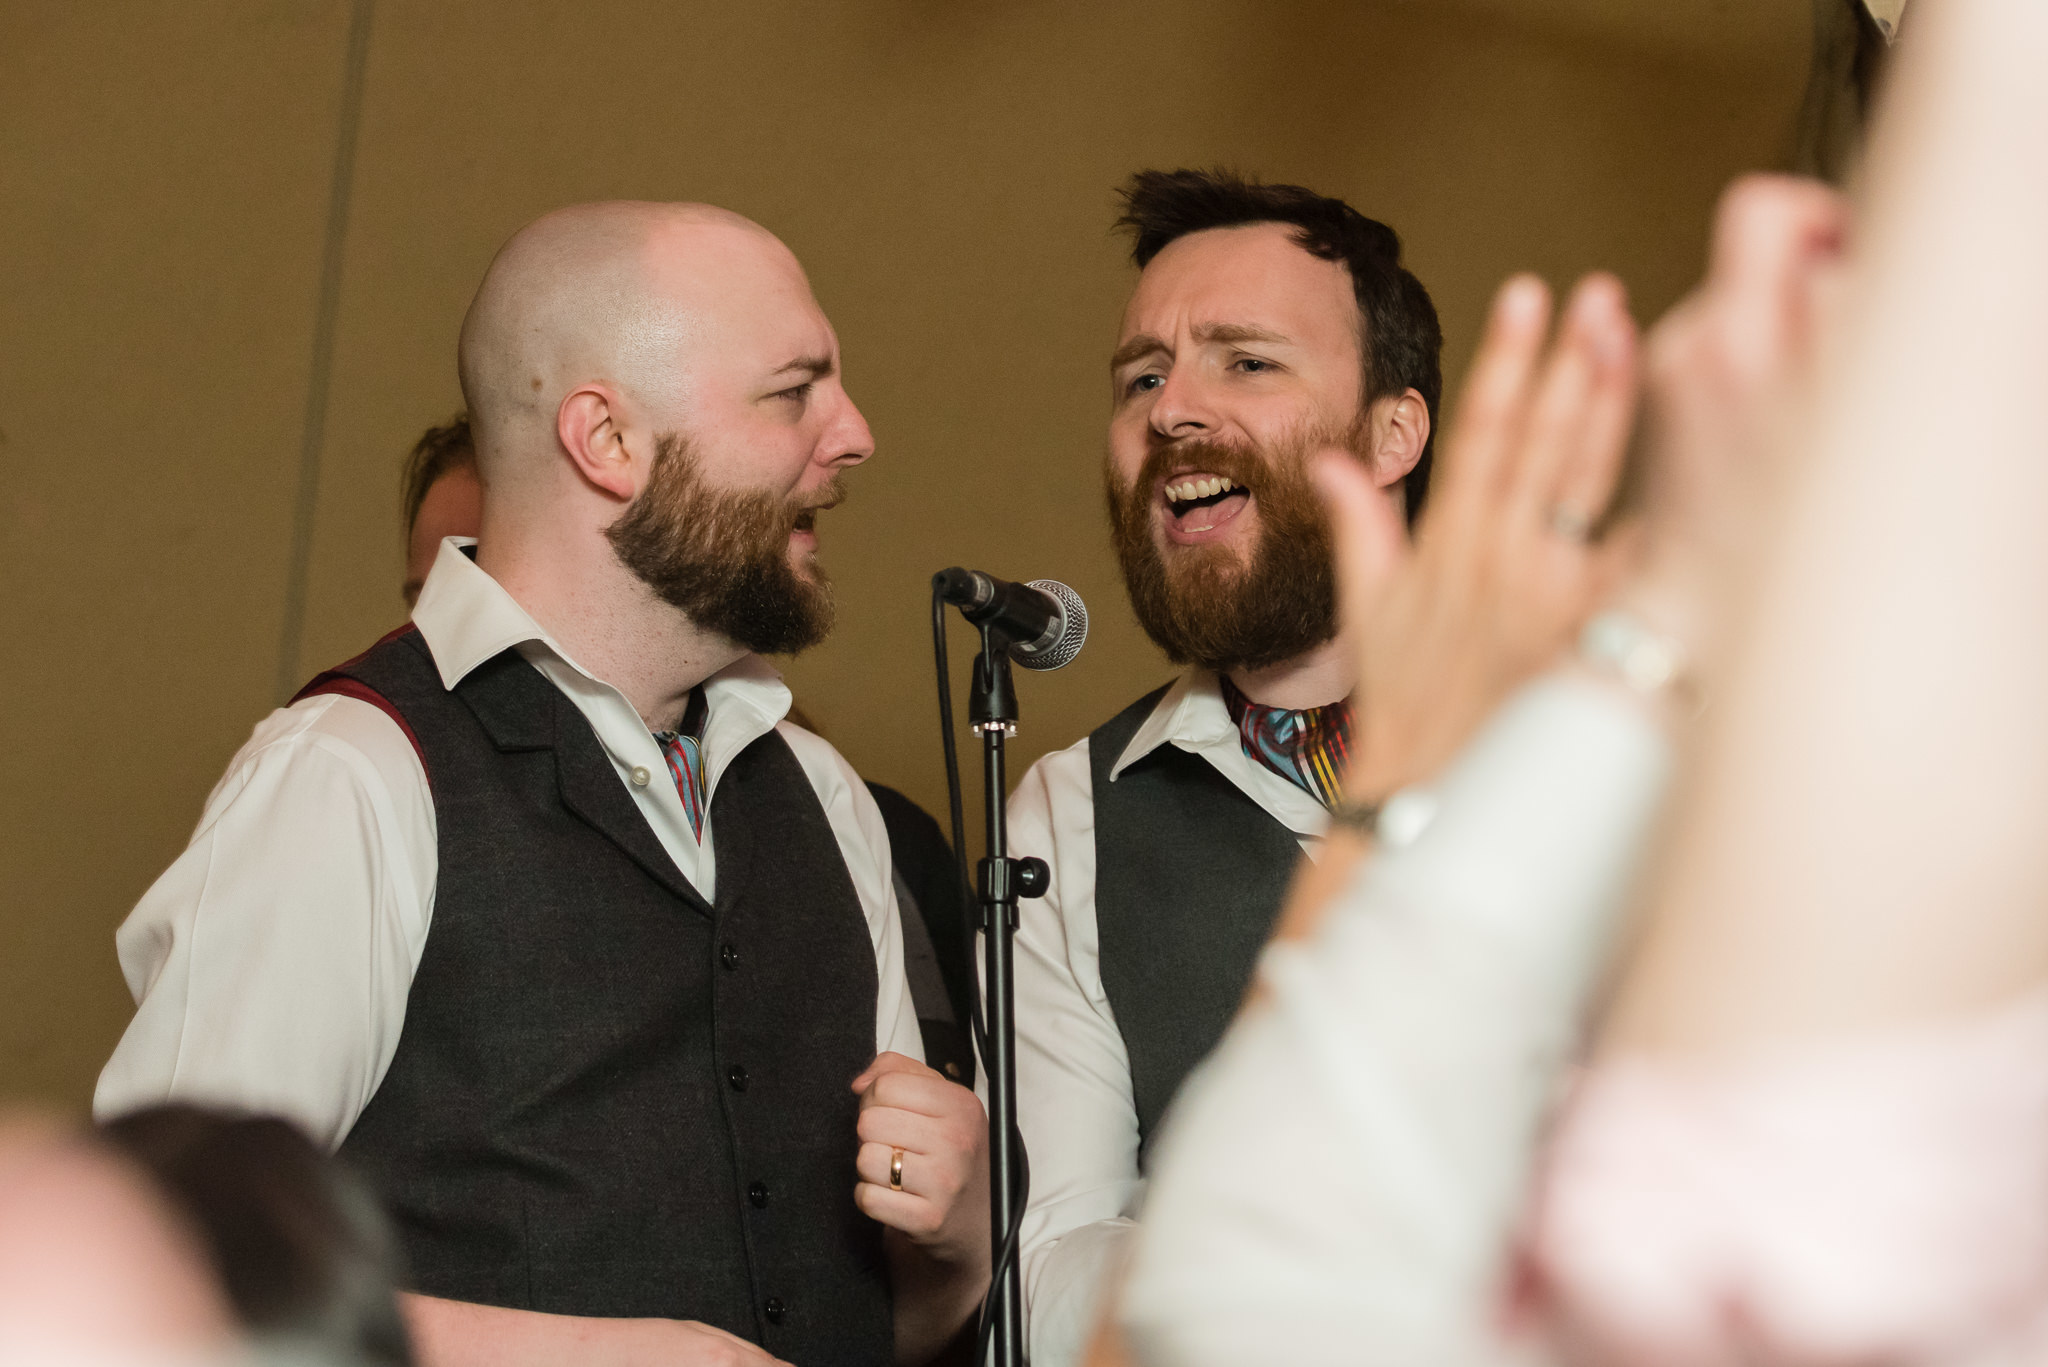 The groom and his brother perform during the tipi wedding reception